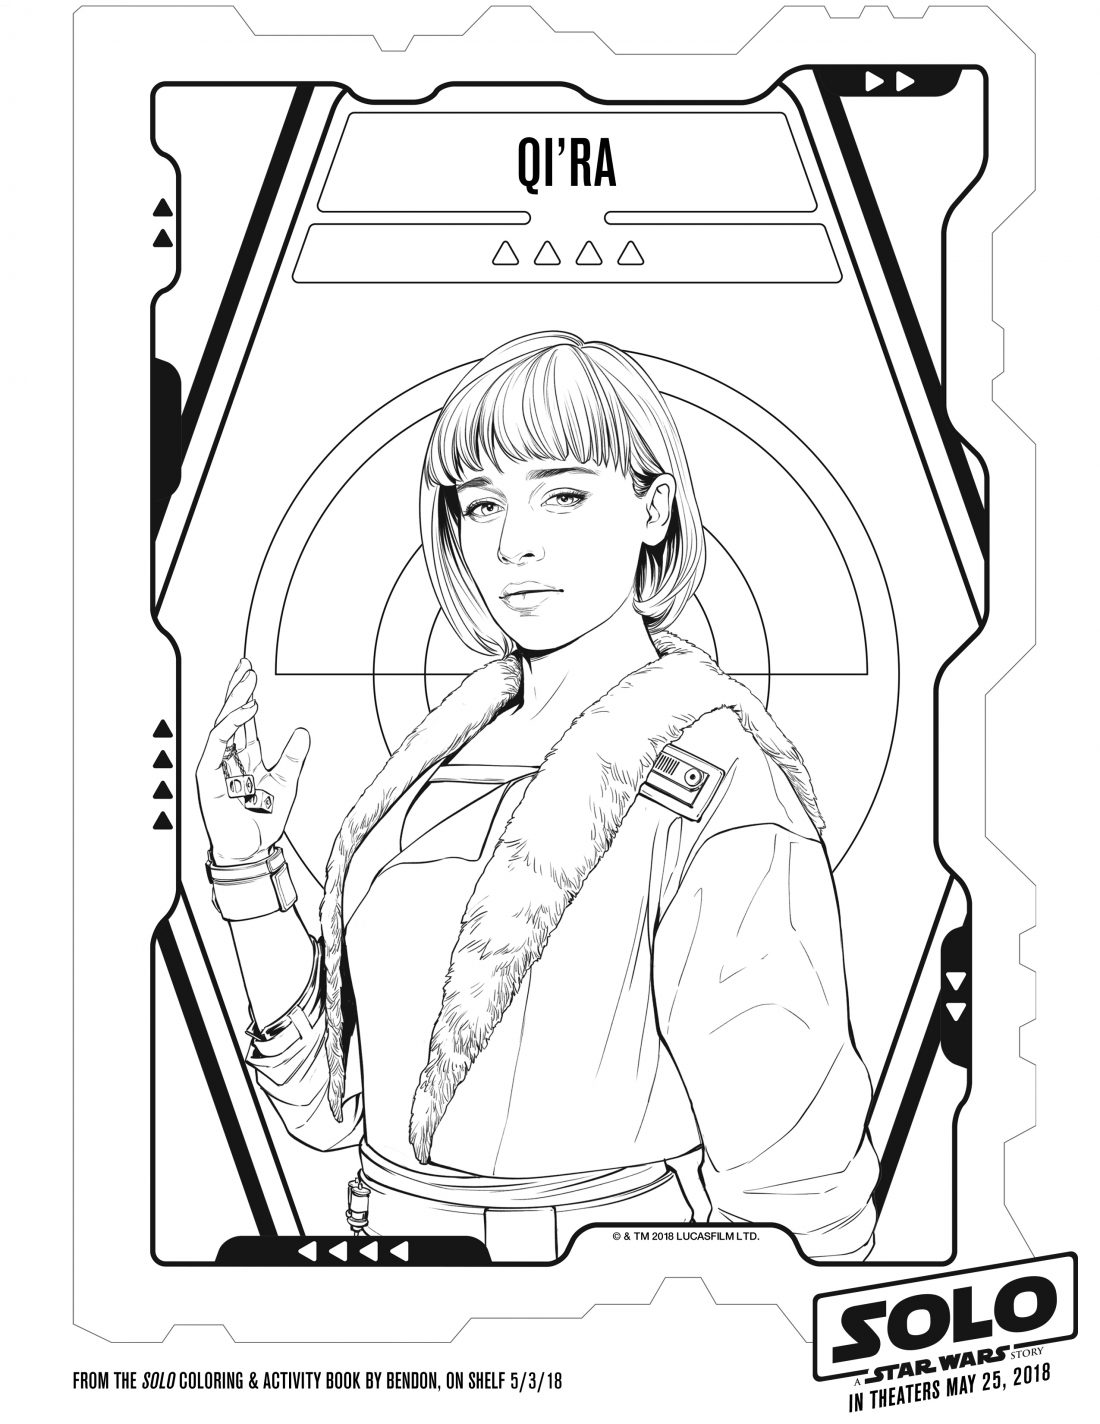 star wars free coloring pages coloring pages star wars free printable coloring pages pages star free wars coloring